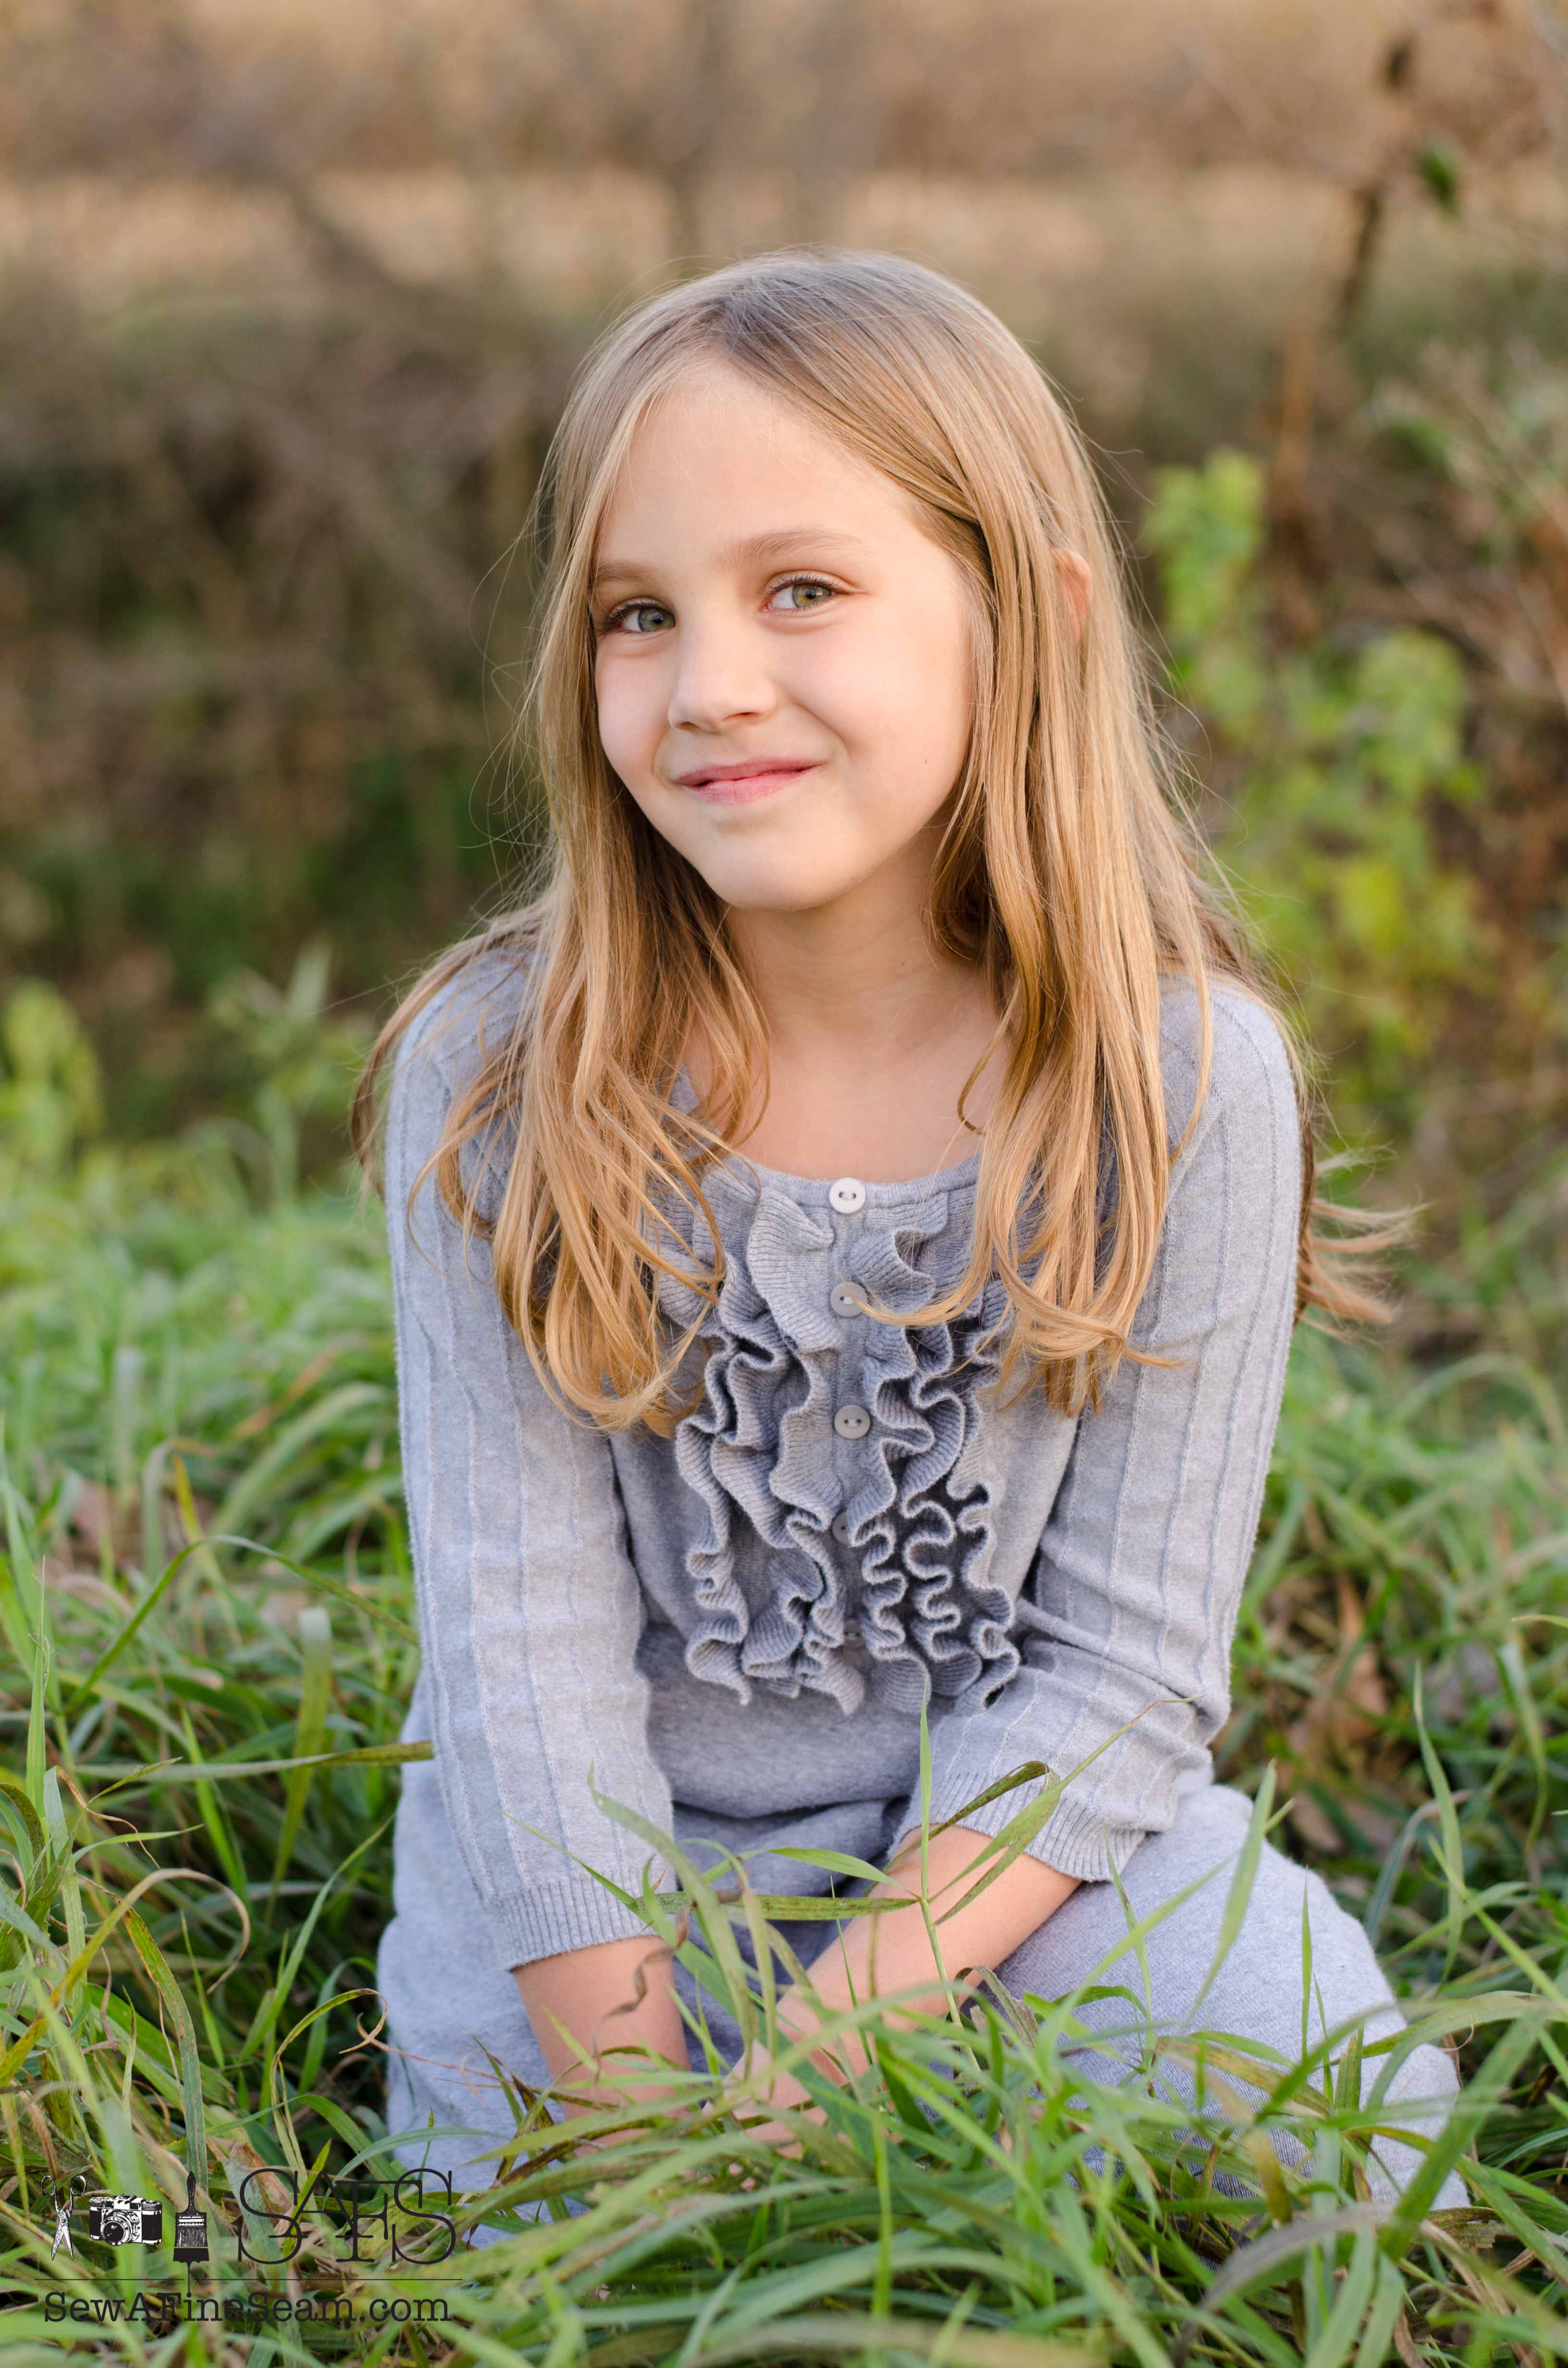 Pics For Very Pretty 11 Year Old Girl